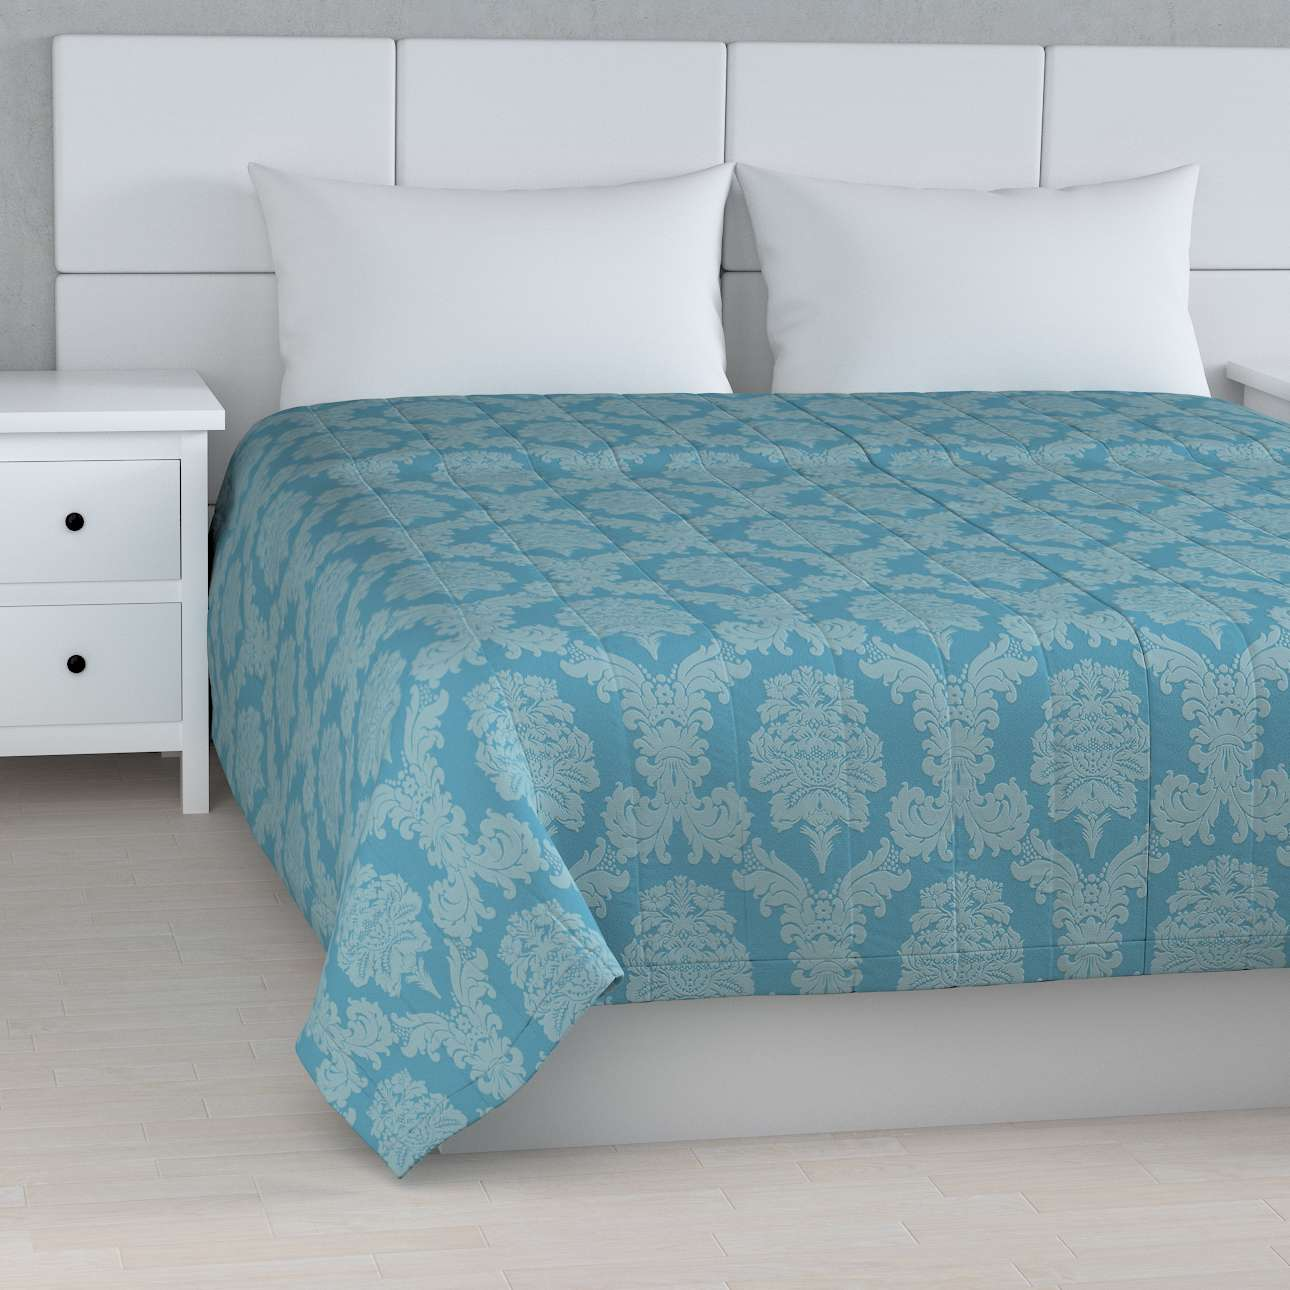 Quilted throw (vertical quilt pattern) 260 x 210 cm (102 x 83 inch) in collection Damasco, fabric: 613-67